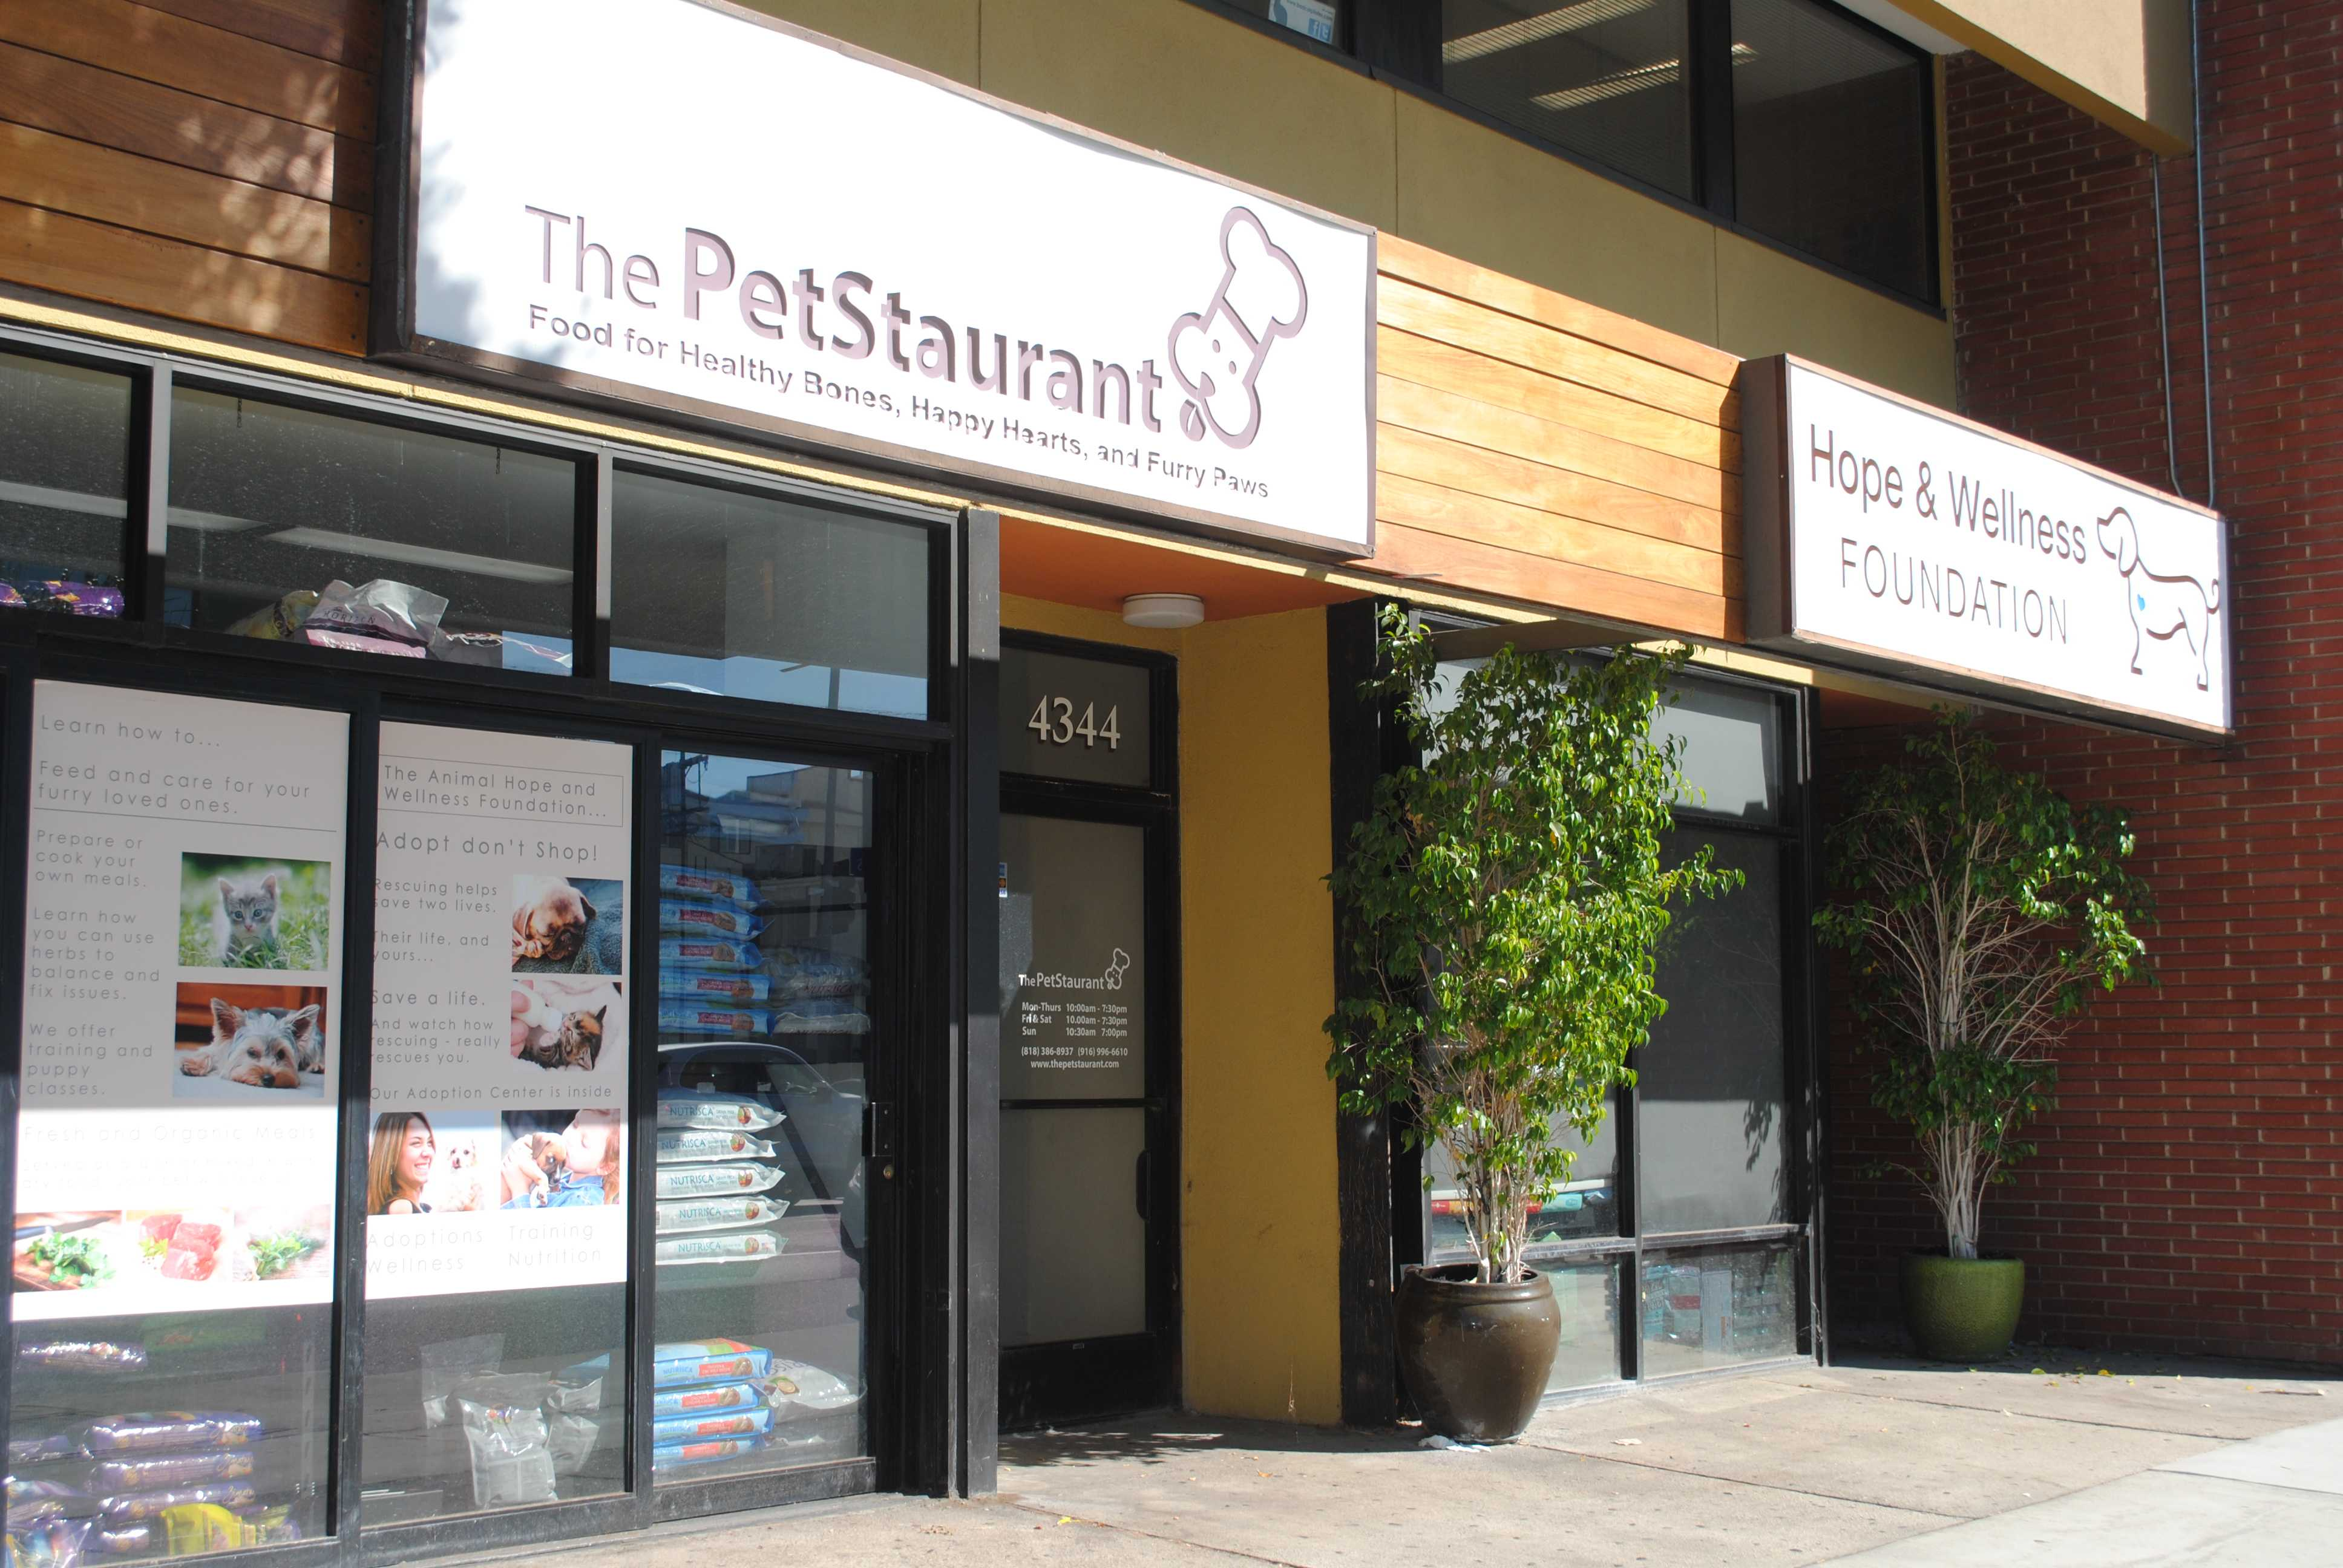 The+Animal+Hope+and+Wellness+Foundation+%28AHWF%29+is+located+in+Sherman+Oaks+and+shares+a+building+space+with+Marc+Ching%27s+other+business%2C+the+PetStaurant.+The+AHWF+is+currently+moving+to+a+larger+location+which+is+just+around+the+corner+from+the+old+location%2C+accessible+by+the+ally+way+in+the+rear+of+the+building.